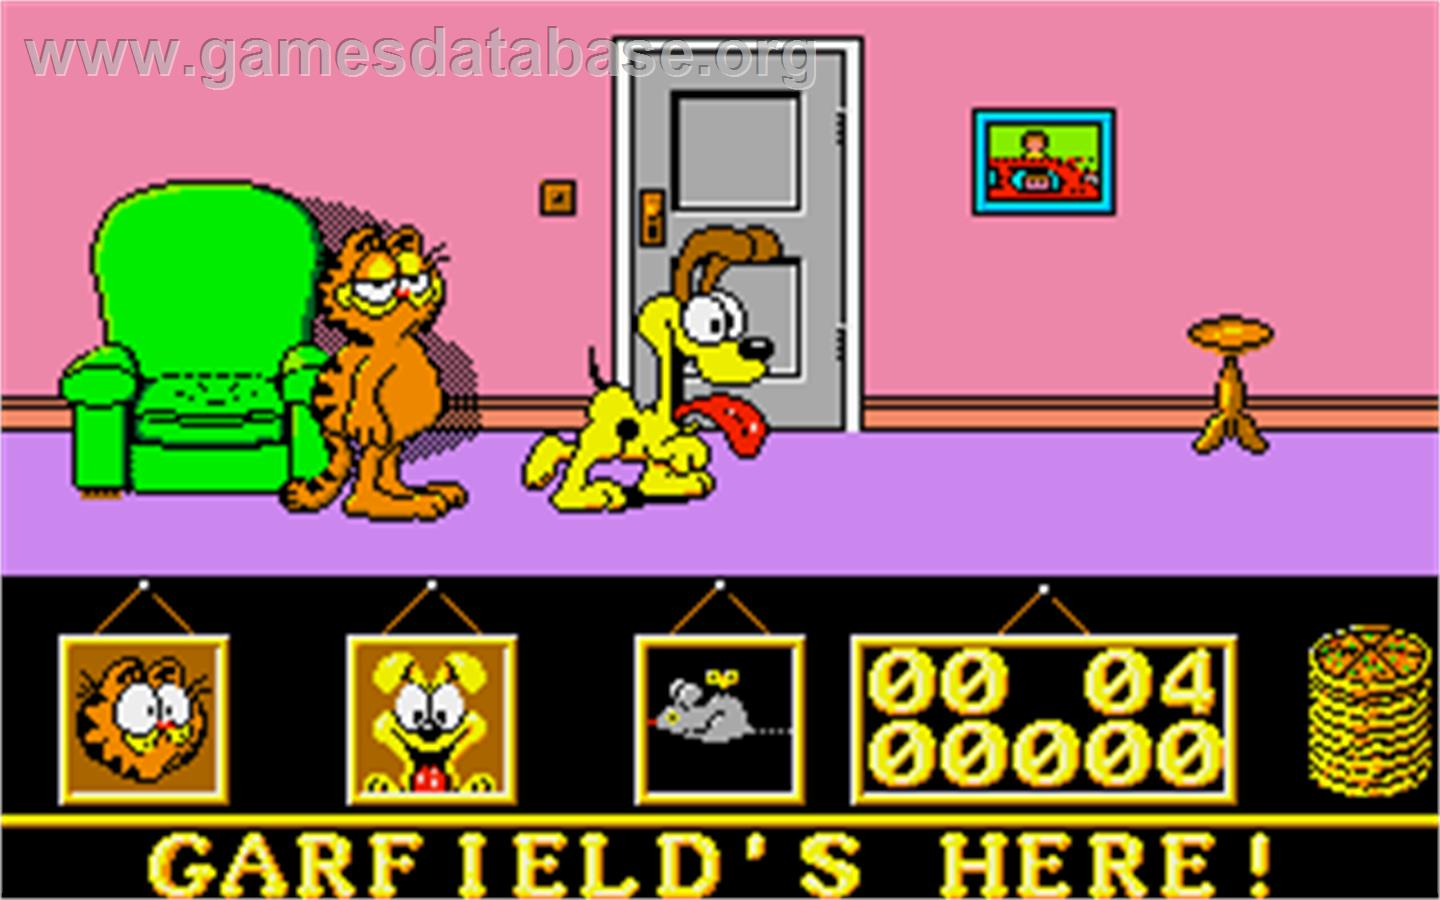 Garfield: Big, Fat, Hairy Deal - Atari ST - Artwork - In Game